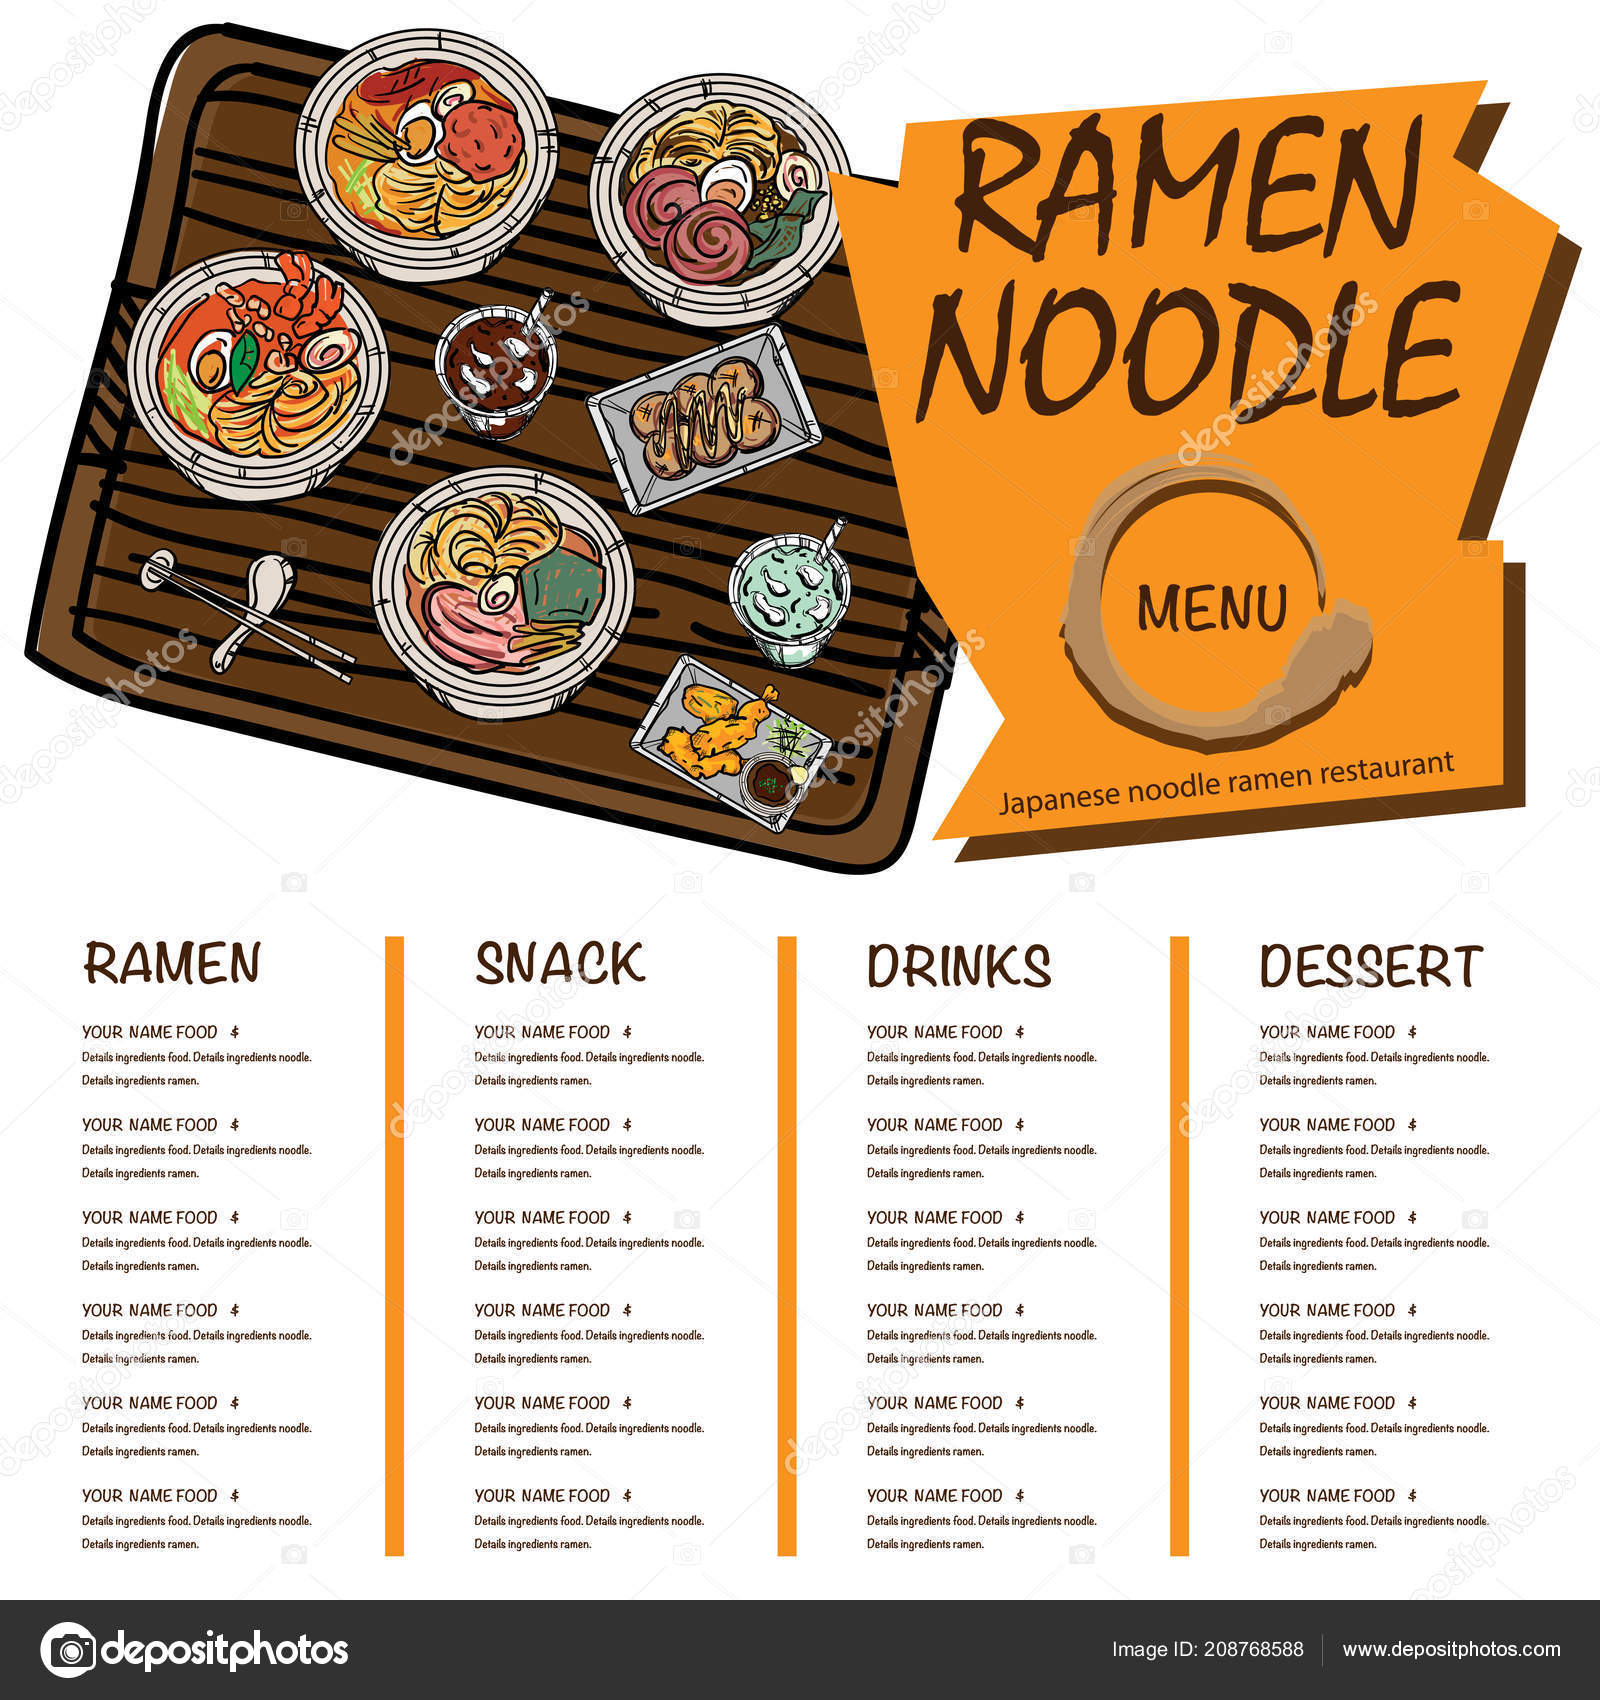 Menu Ramen Noodle Japanese Template Design Stock Vector C Foontntd 208768588